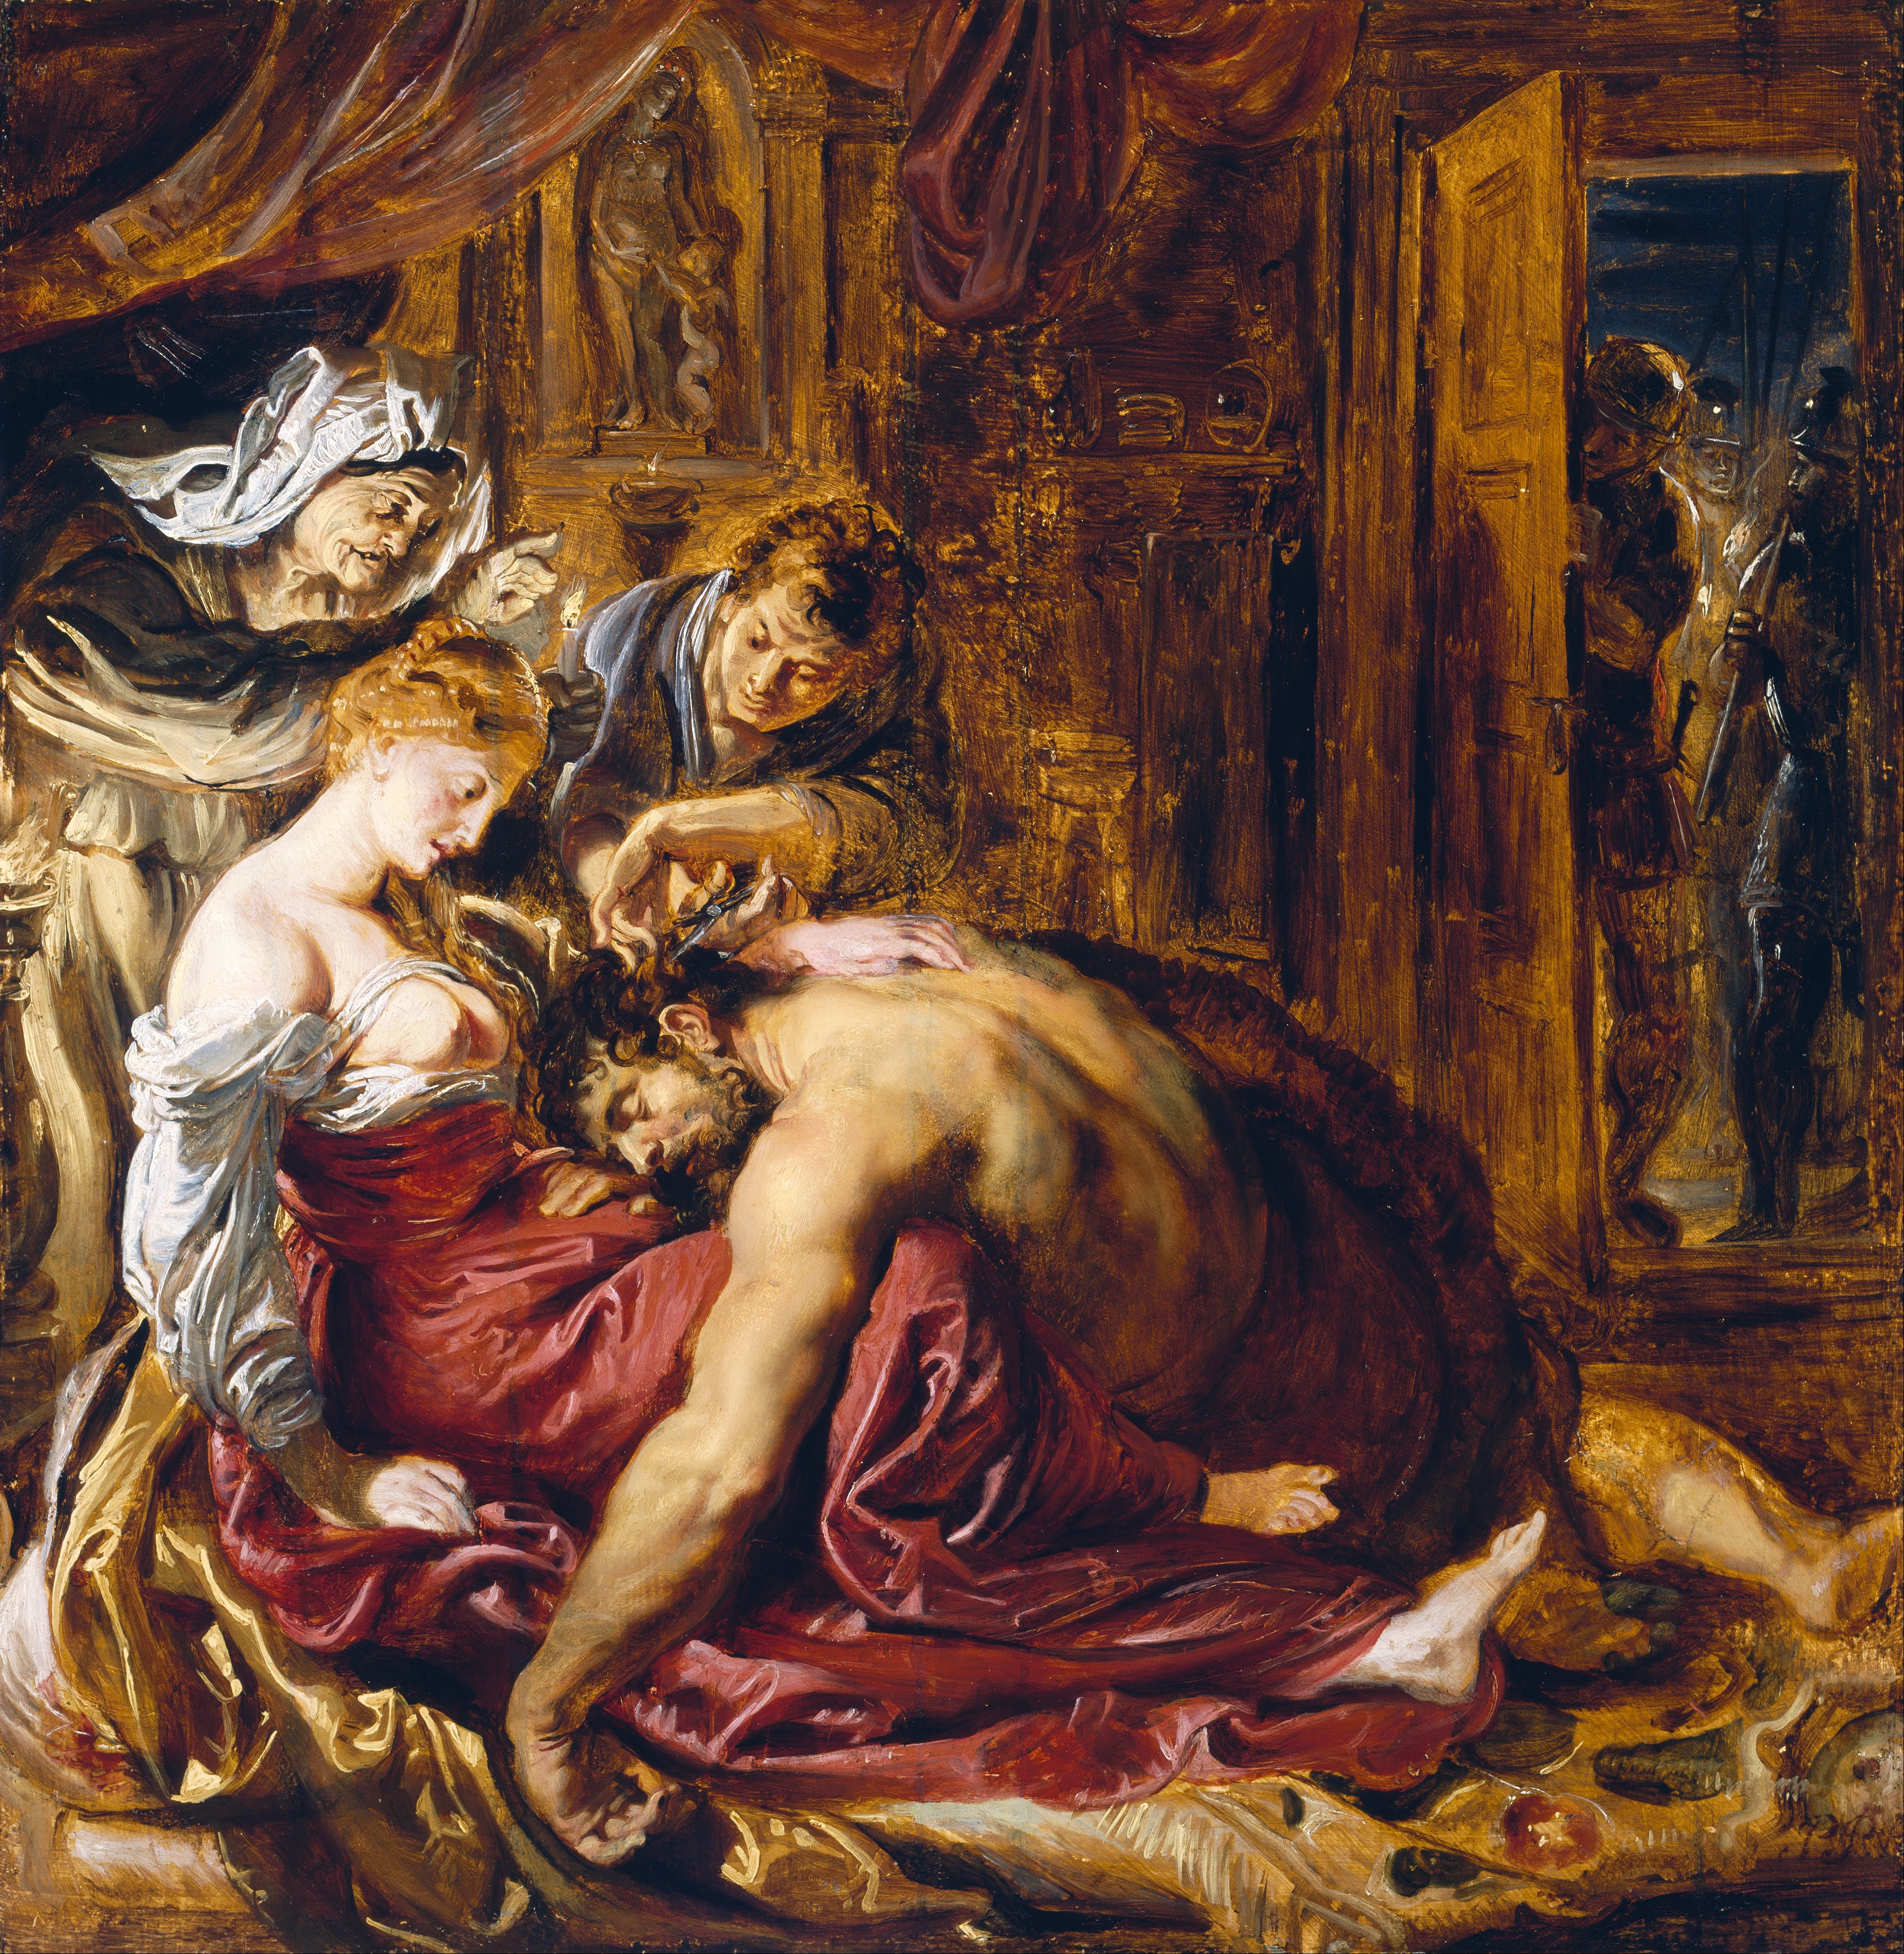 https://upload.wikimedia.org/wikipedia/commons/a/a0/Peter_Paul_Rubens_-_Samson_and_Delilah_-_Google_Art_Project.jpg